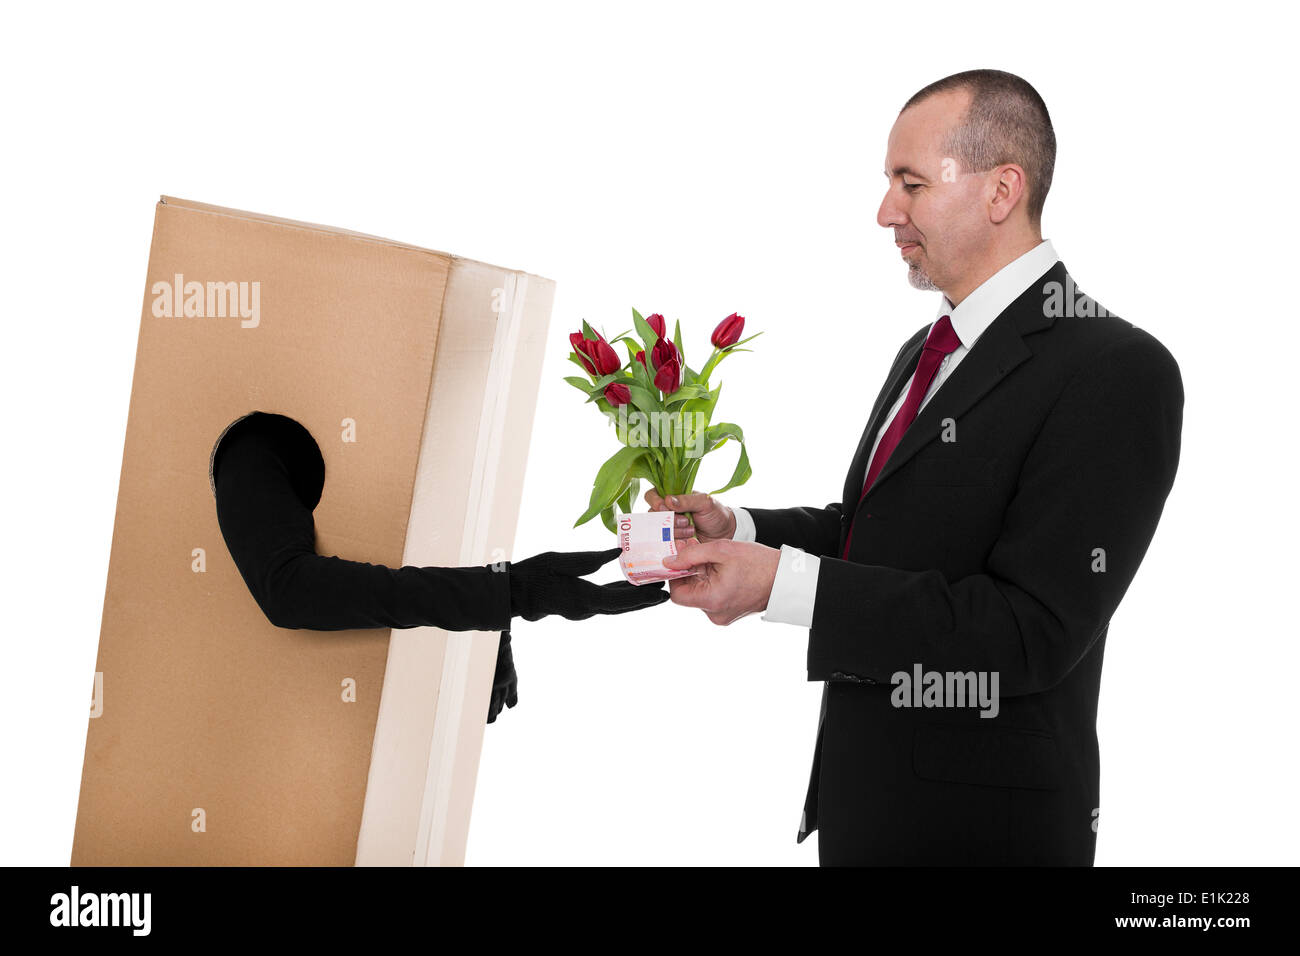 Concept: a Businessman ordered a flower deliverer - Stock Image